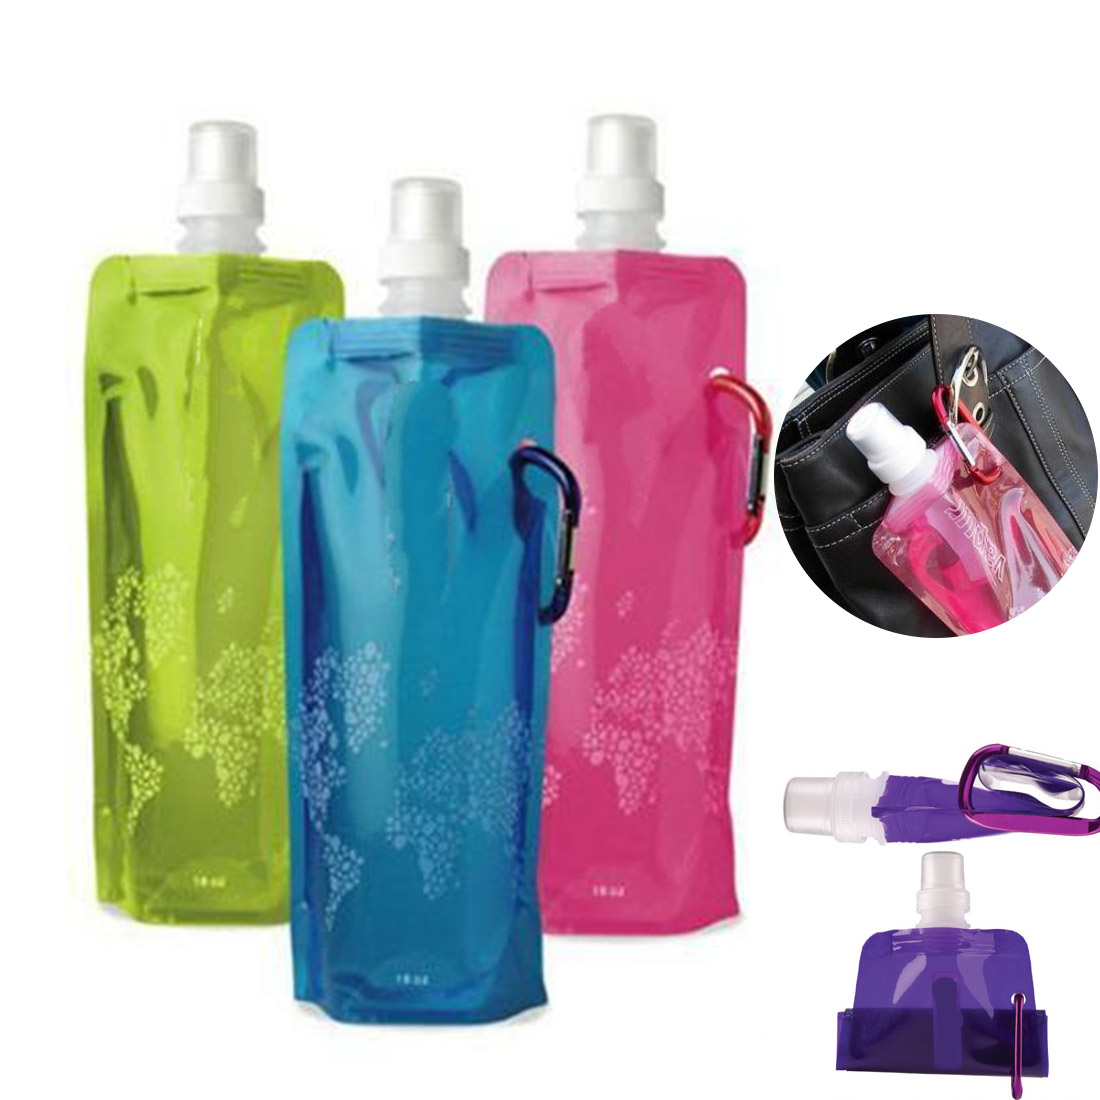 Us 0 99 30 Off Useful 480ml Portable Foldable Water Bottle Ice Bag Running Outdoor Sport Camping Hiking Random Color In Bottles From Home